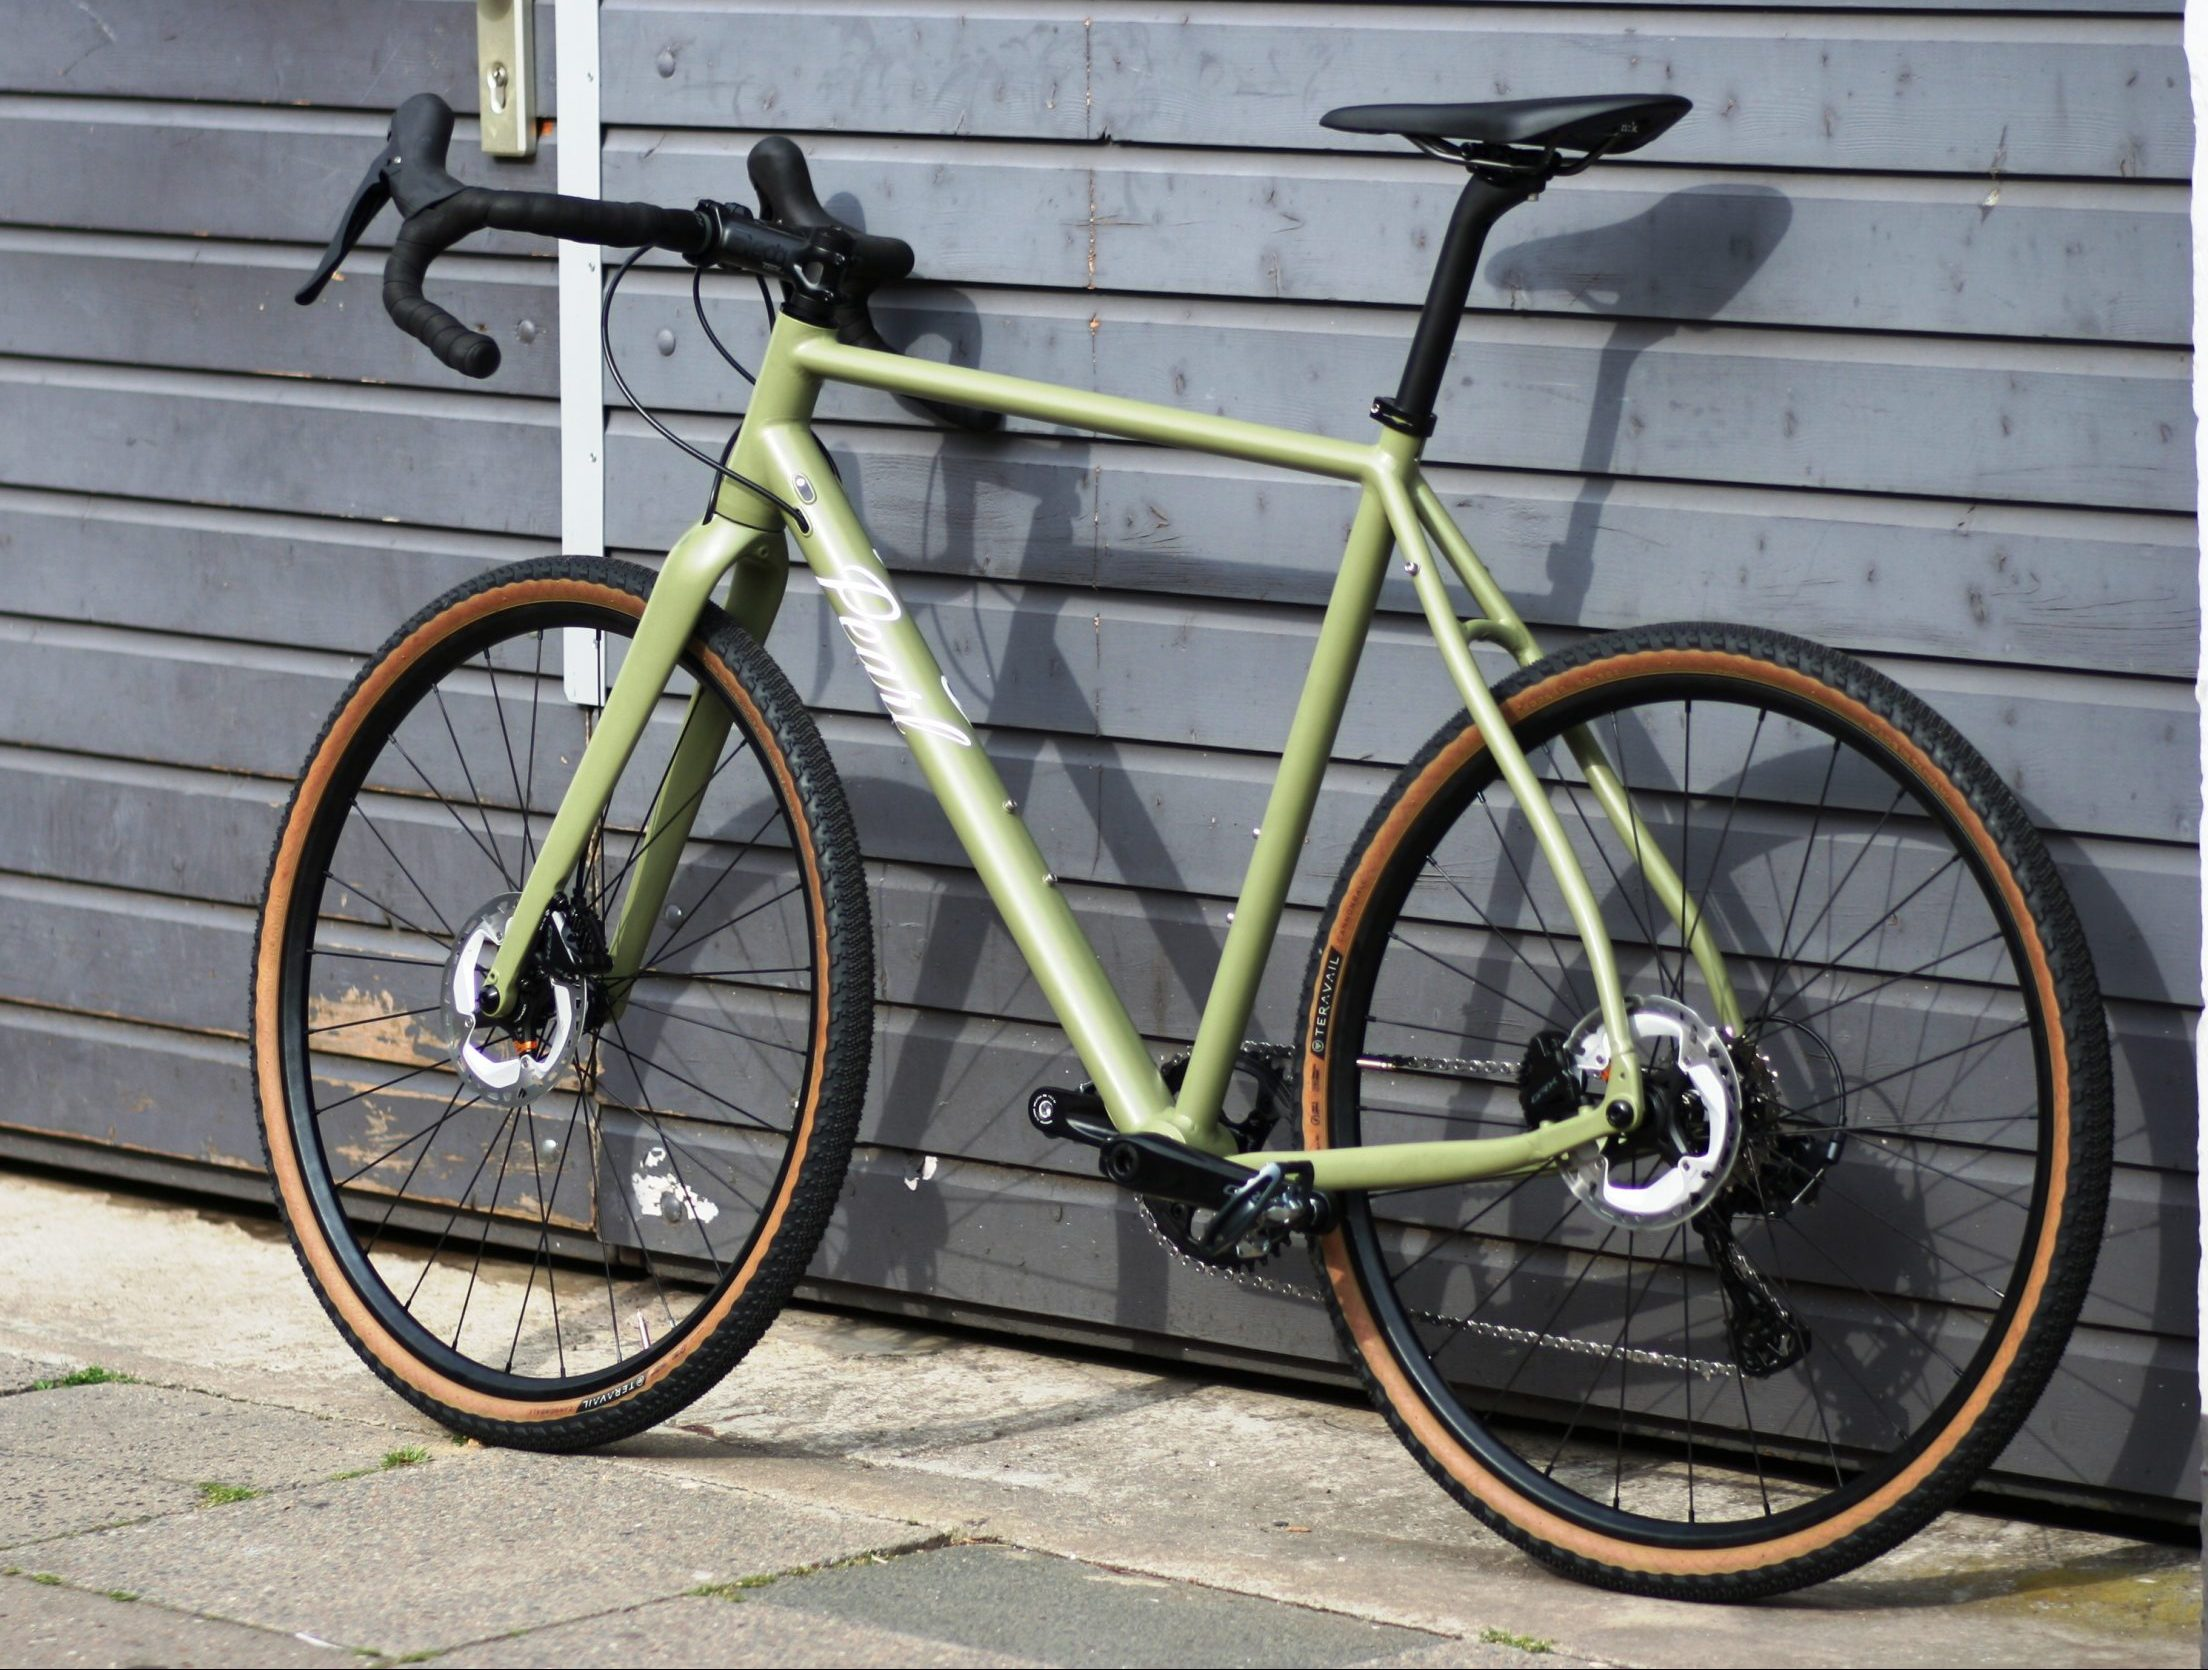 This is what our alloy frames can do. 8,5 kg with Pearl DT Swiss wheels